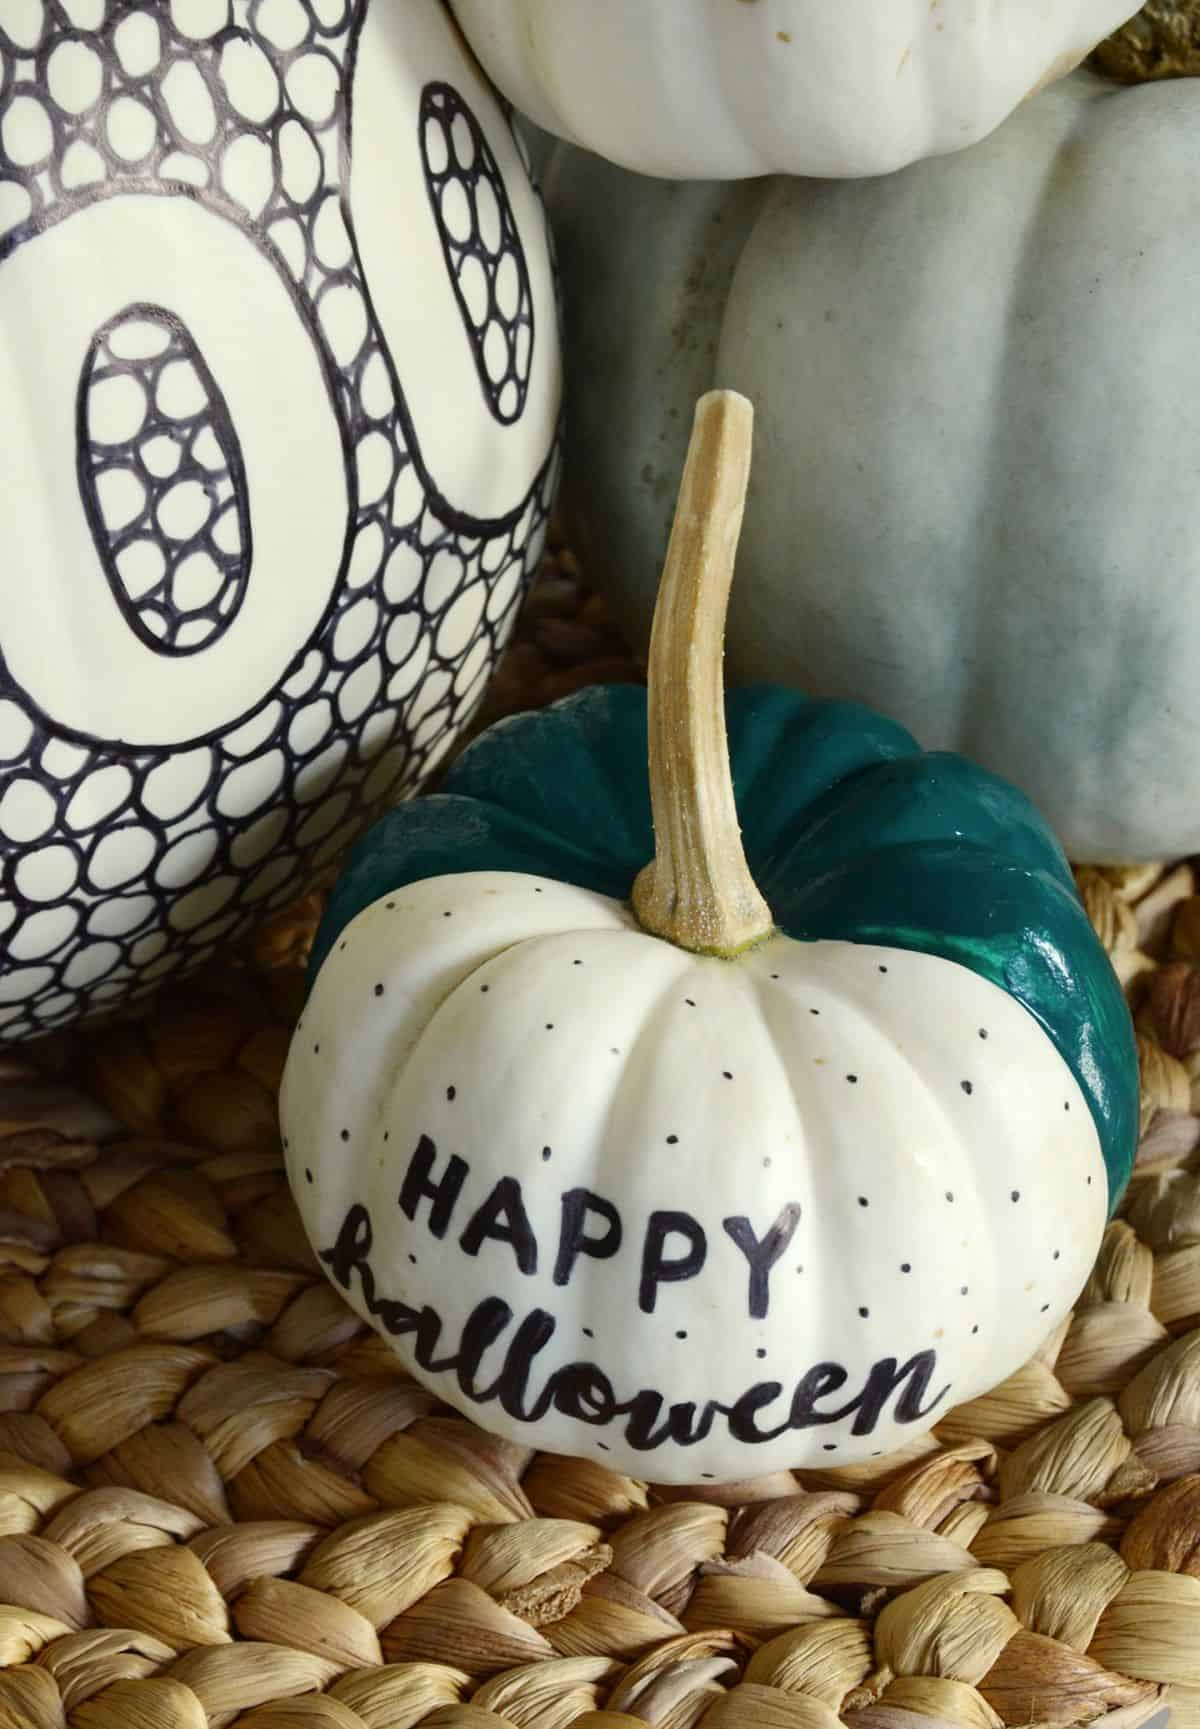 Diy black and white patterned pumpkin happy halloween